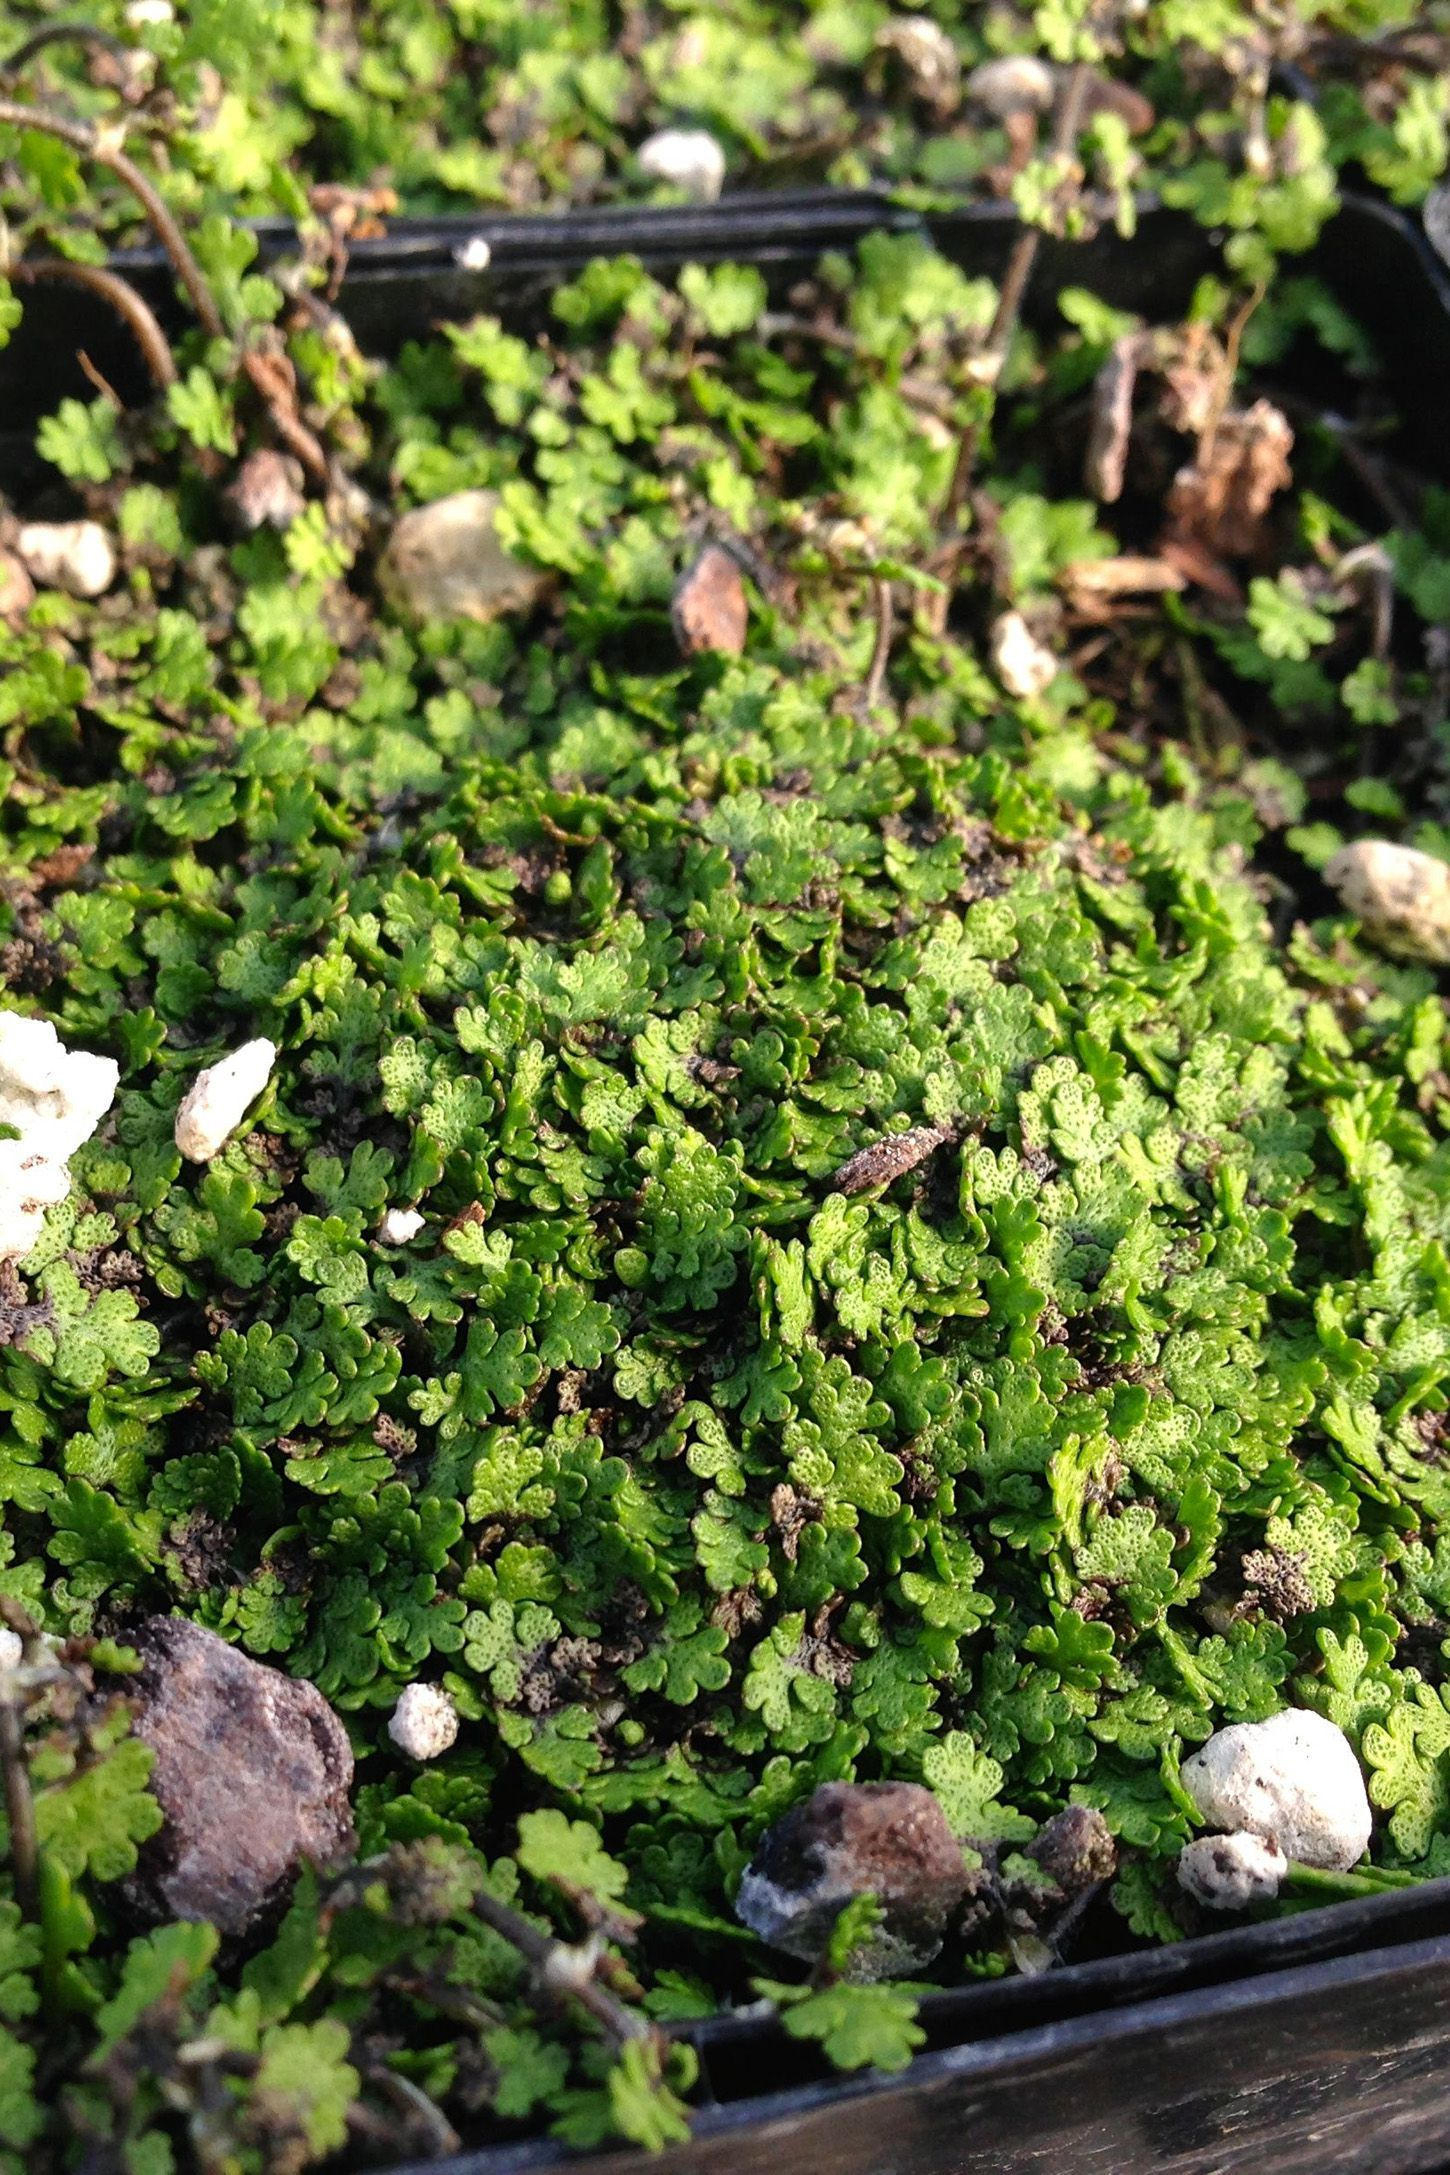 Ground Cover Plants To Try Out In Your Yard This Season Ground Cover Plants Ground Cover Ground Cover Flowers